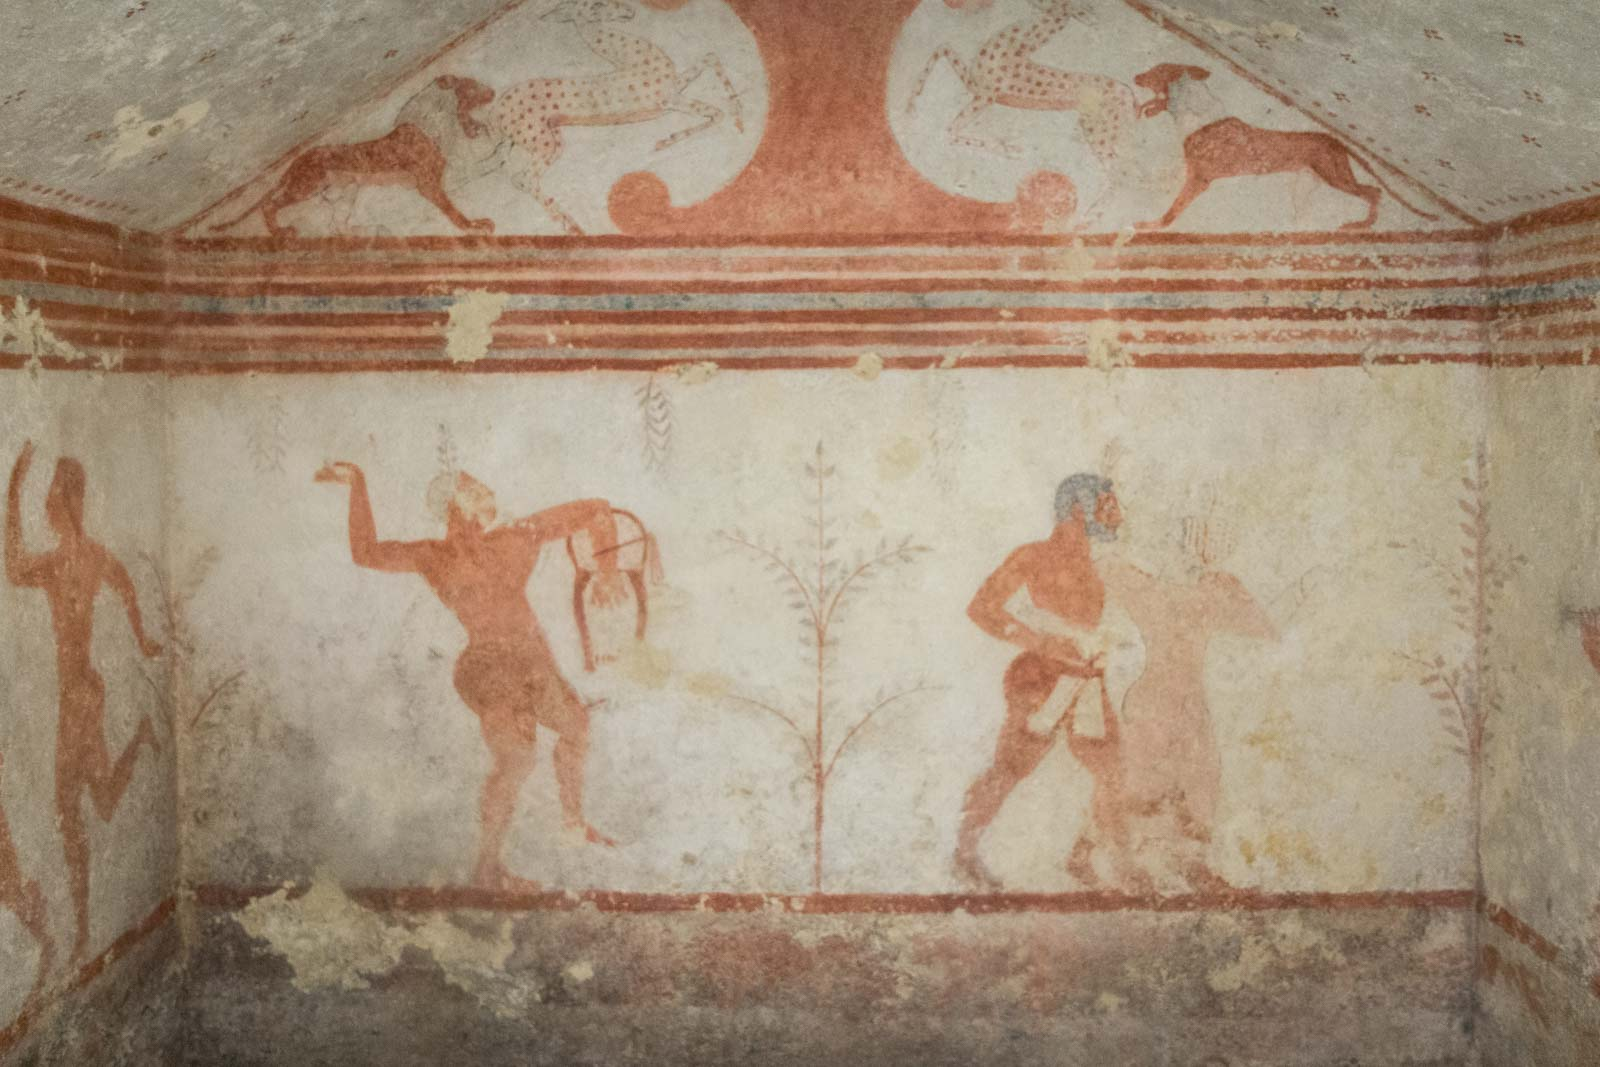 Etruscan tombs at Tarquinia, Italy